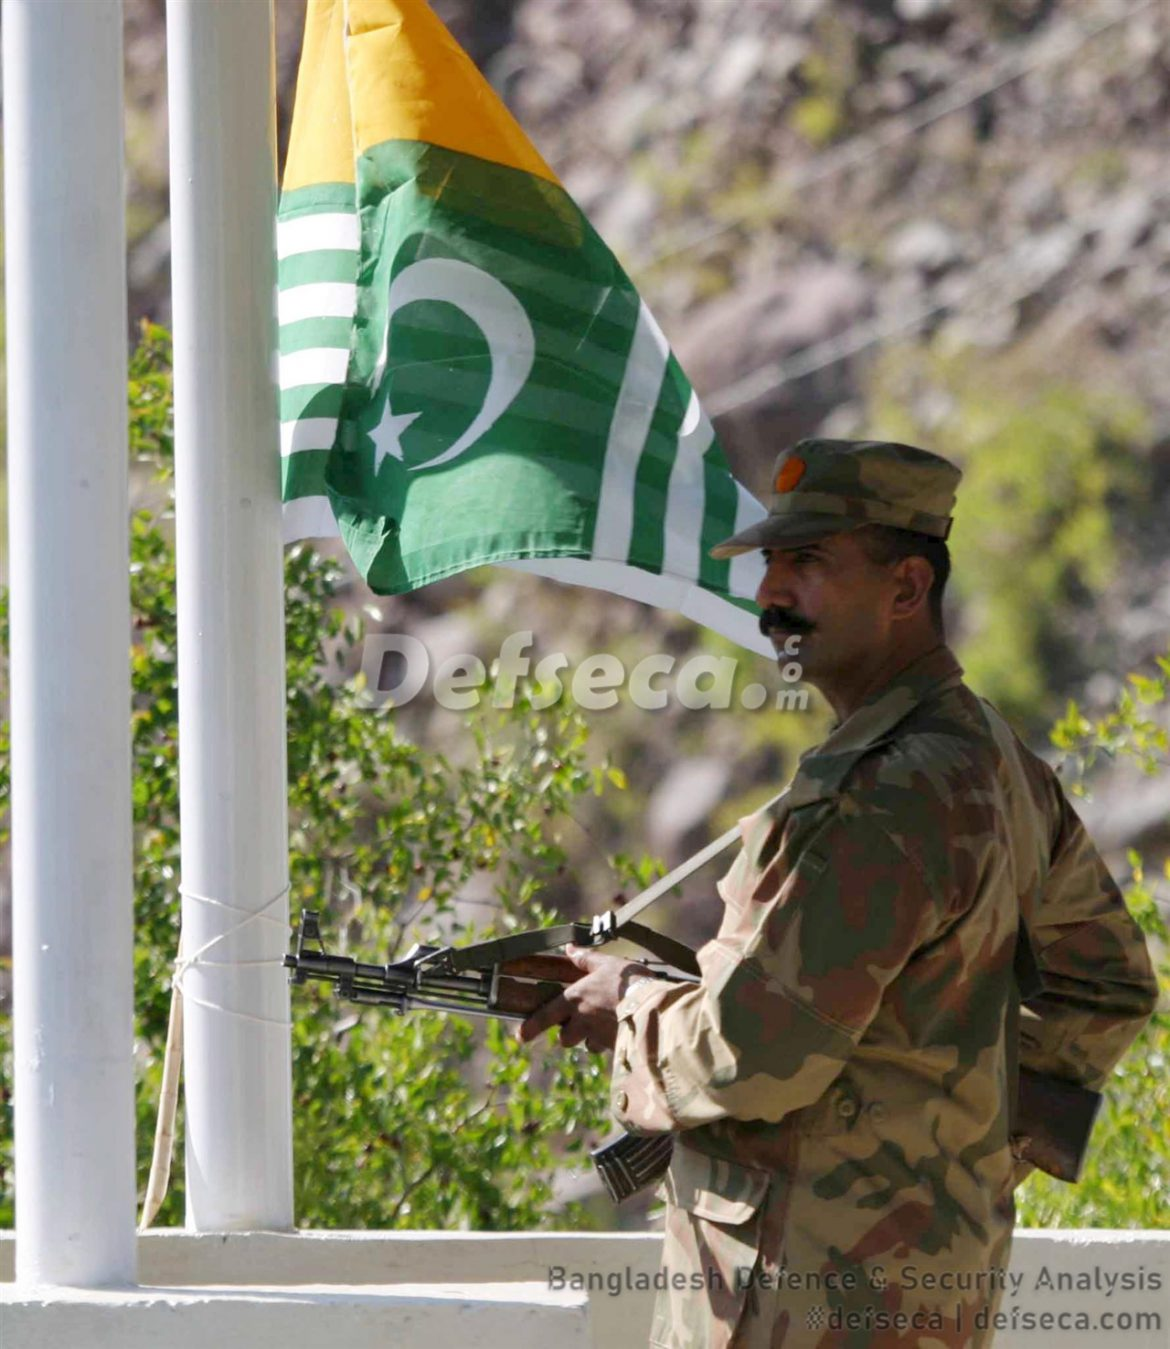 Pakistan responds to Indian Army shelling at LoC